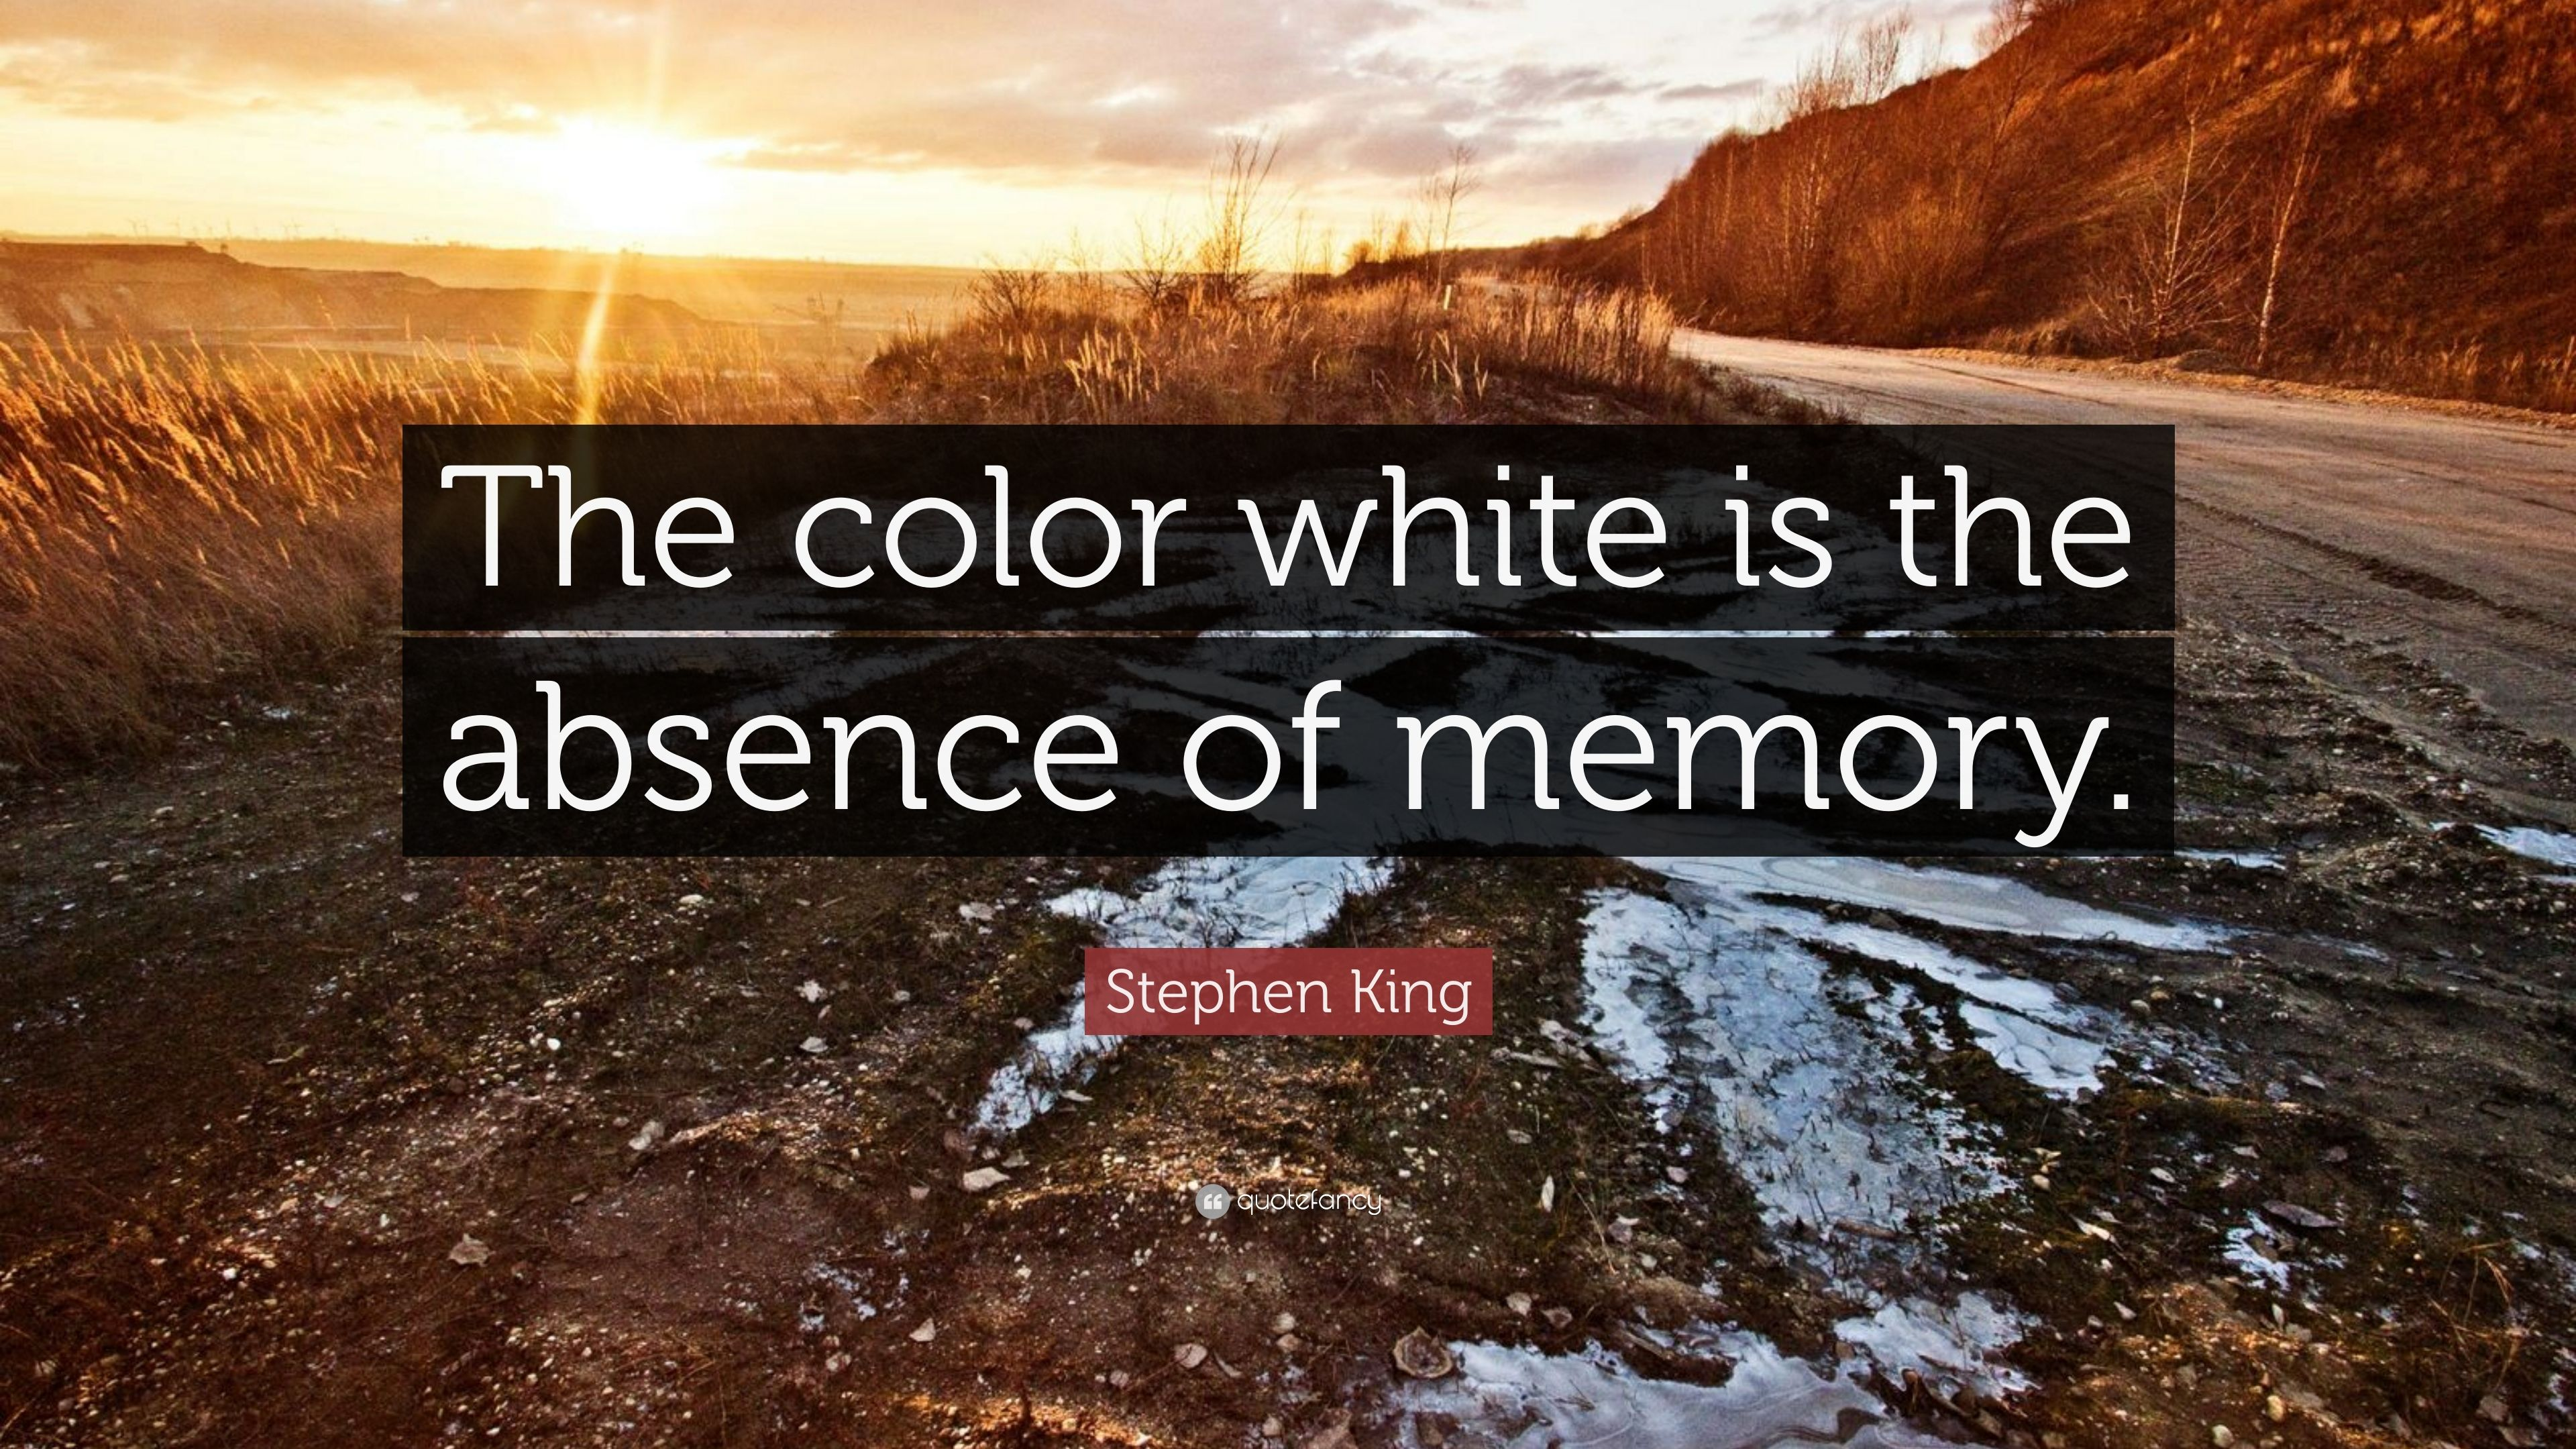 stephen king quote the color white is the absence of memory 7